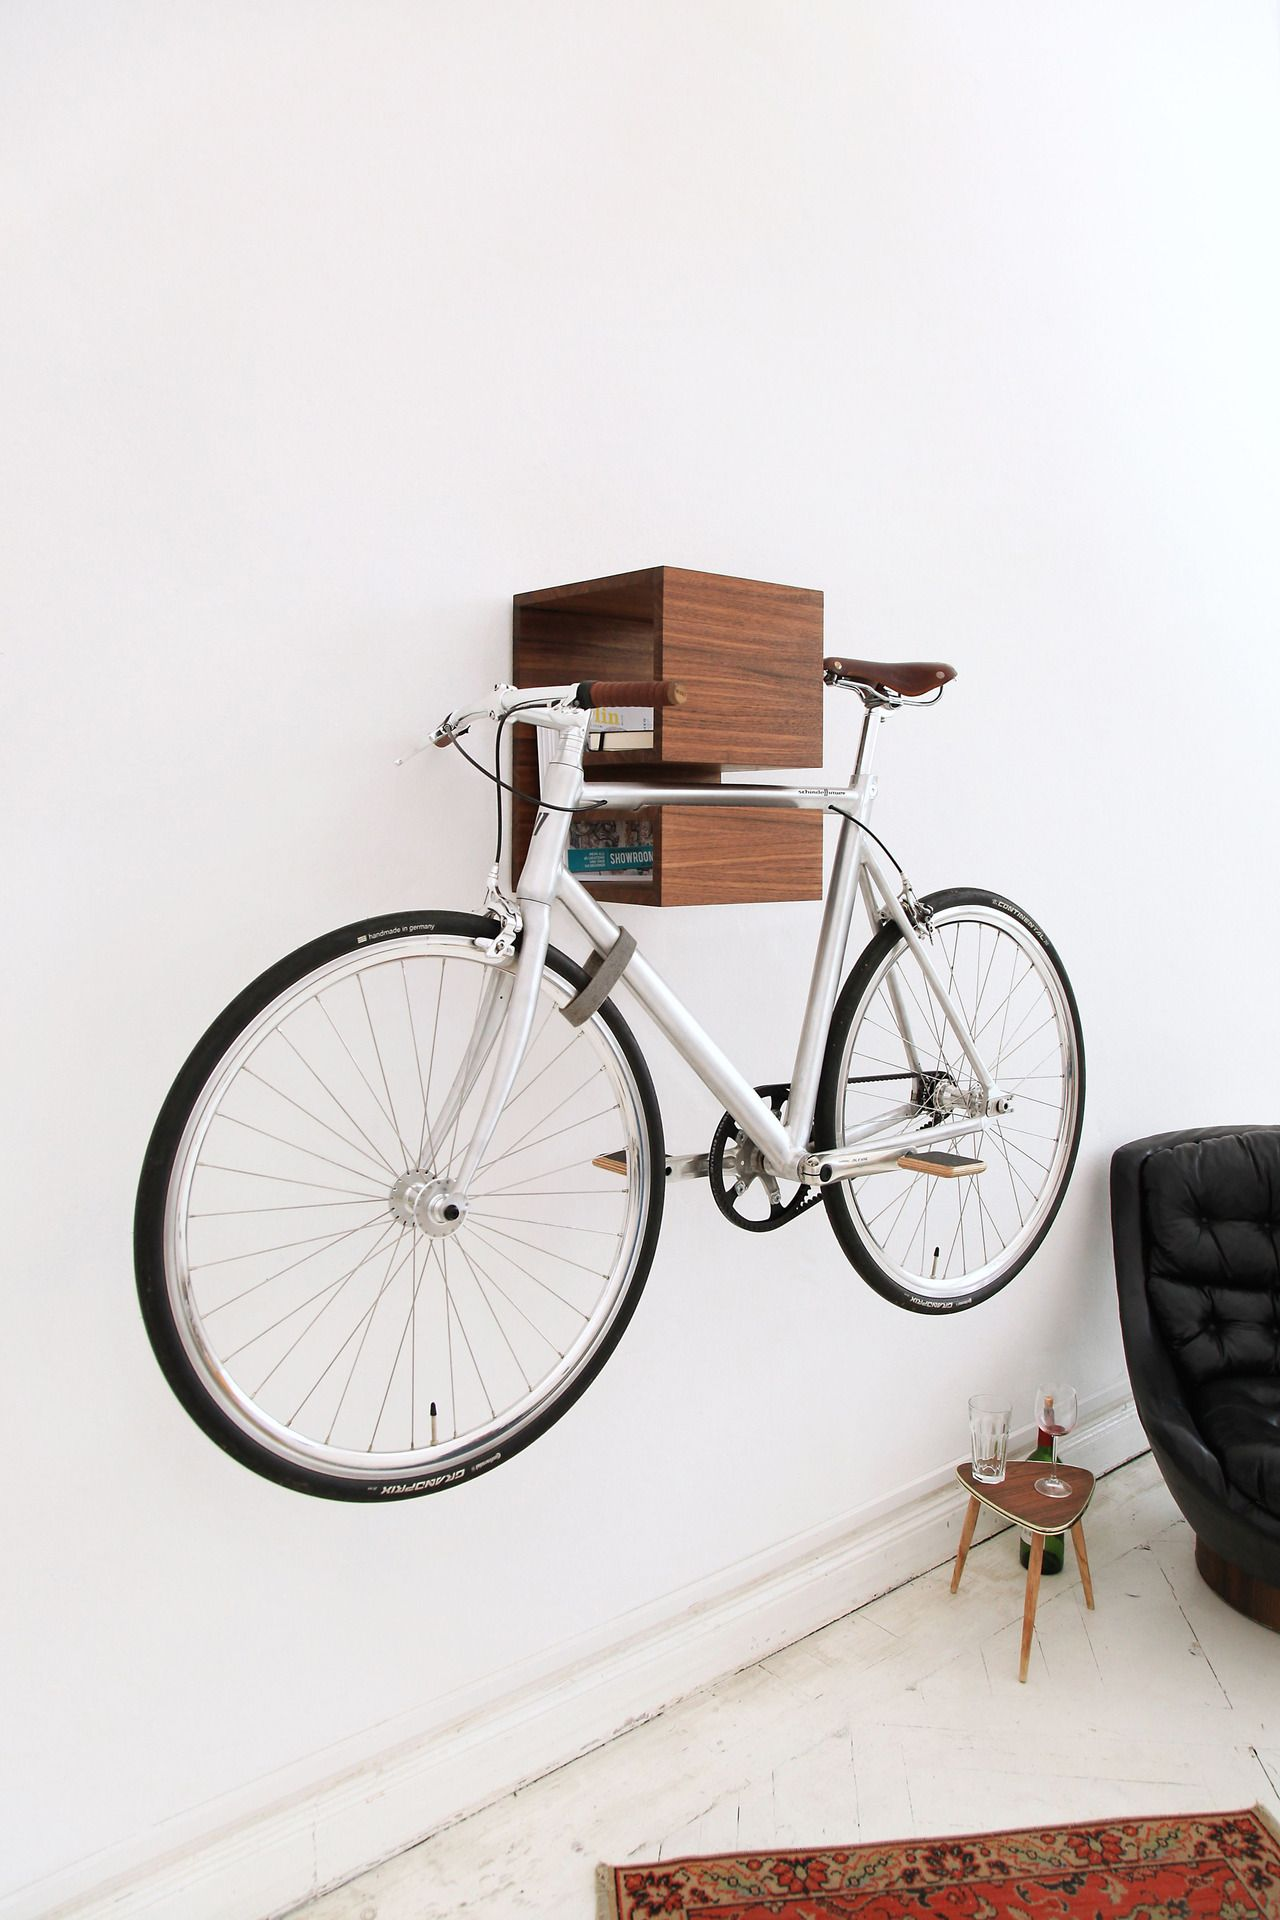 mikili bicycle furniture inspiration pinterest fahrrad m bel und ideen. Black Bedroom Furniture Sets. Home Design Ideas